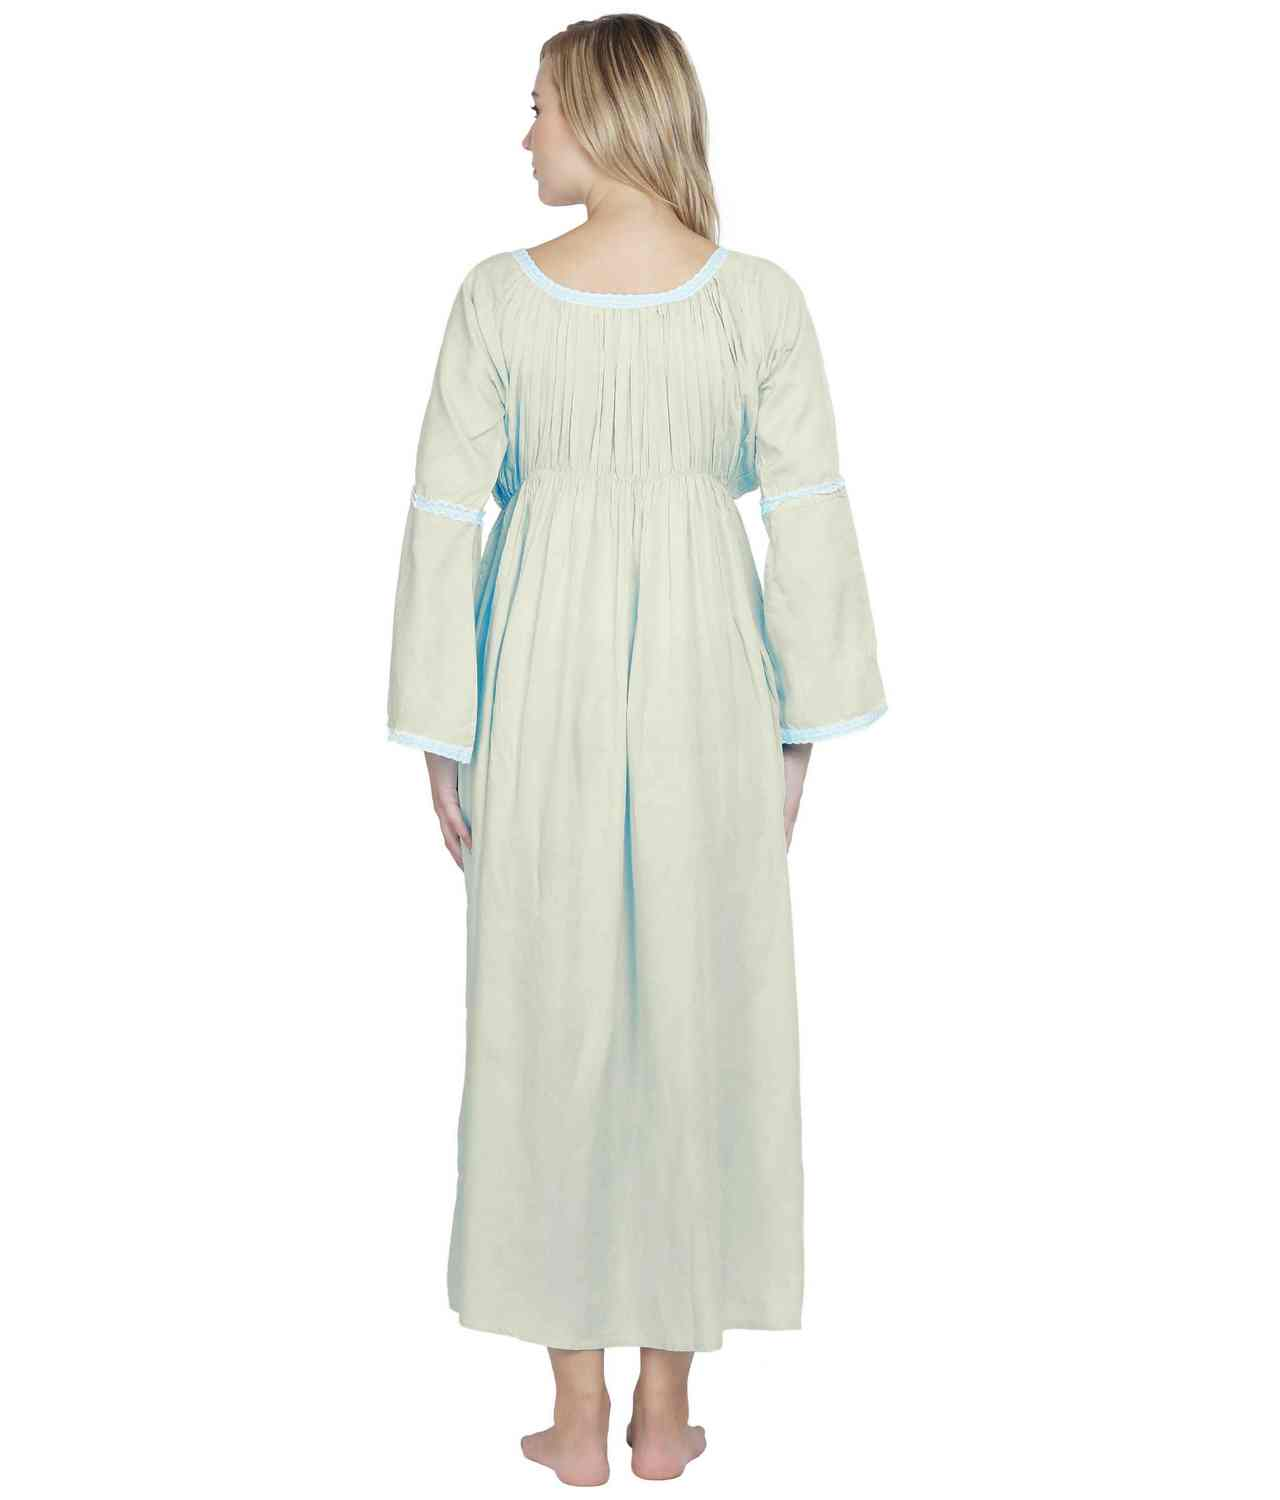 Smock Lace Embellished Maxi Dress cum Nightdress in Off-White